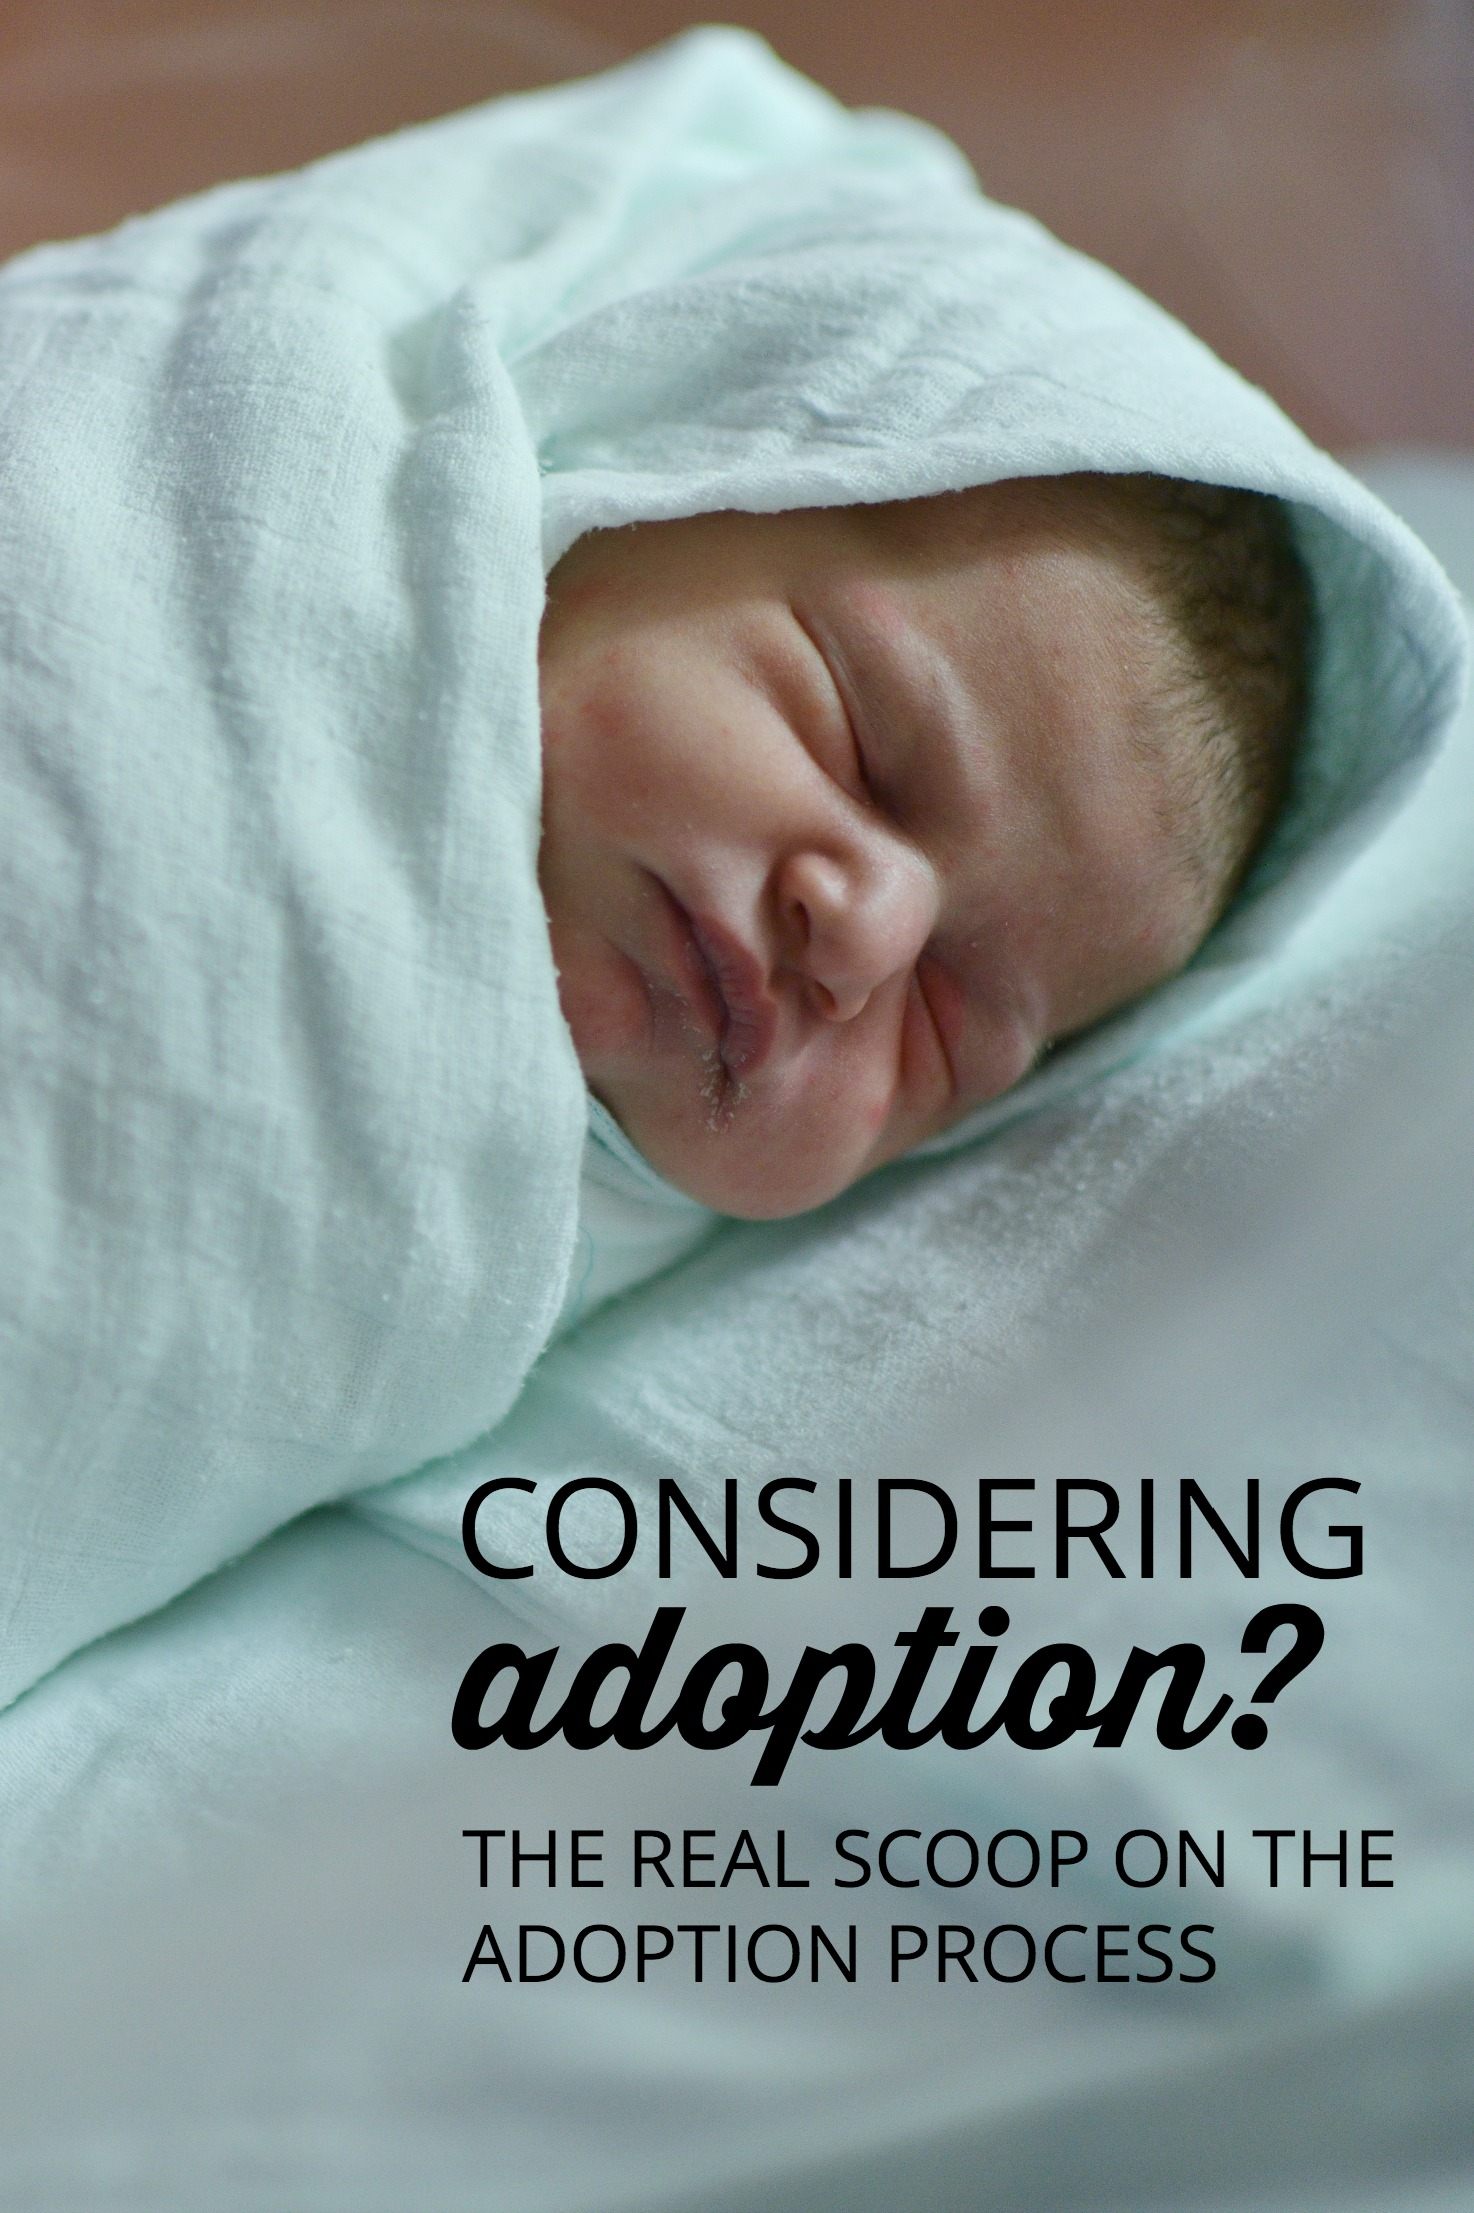 If you're thinking of adoption a child, find out what the process is REALLY like for prospective parents first.